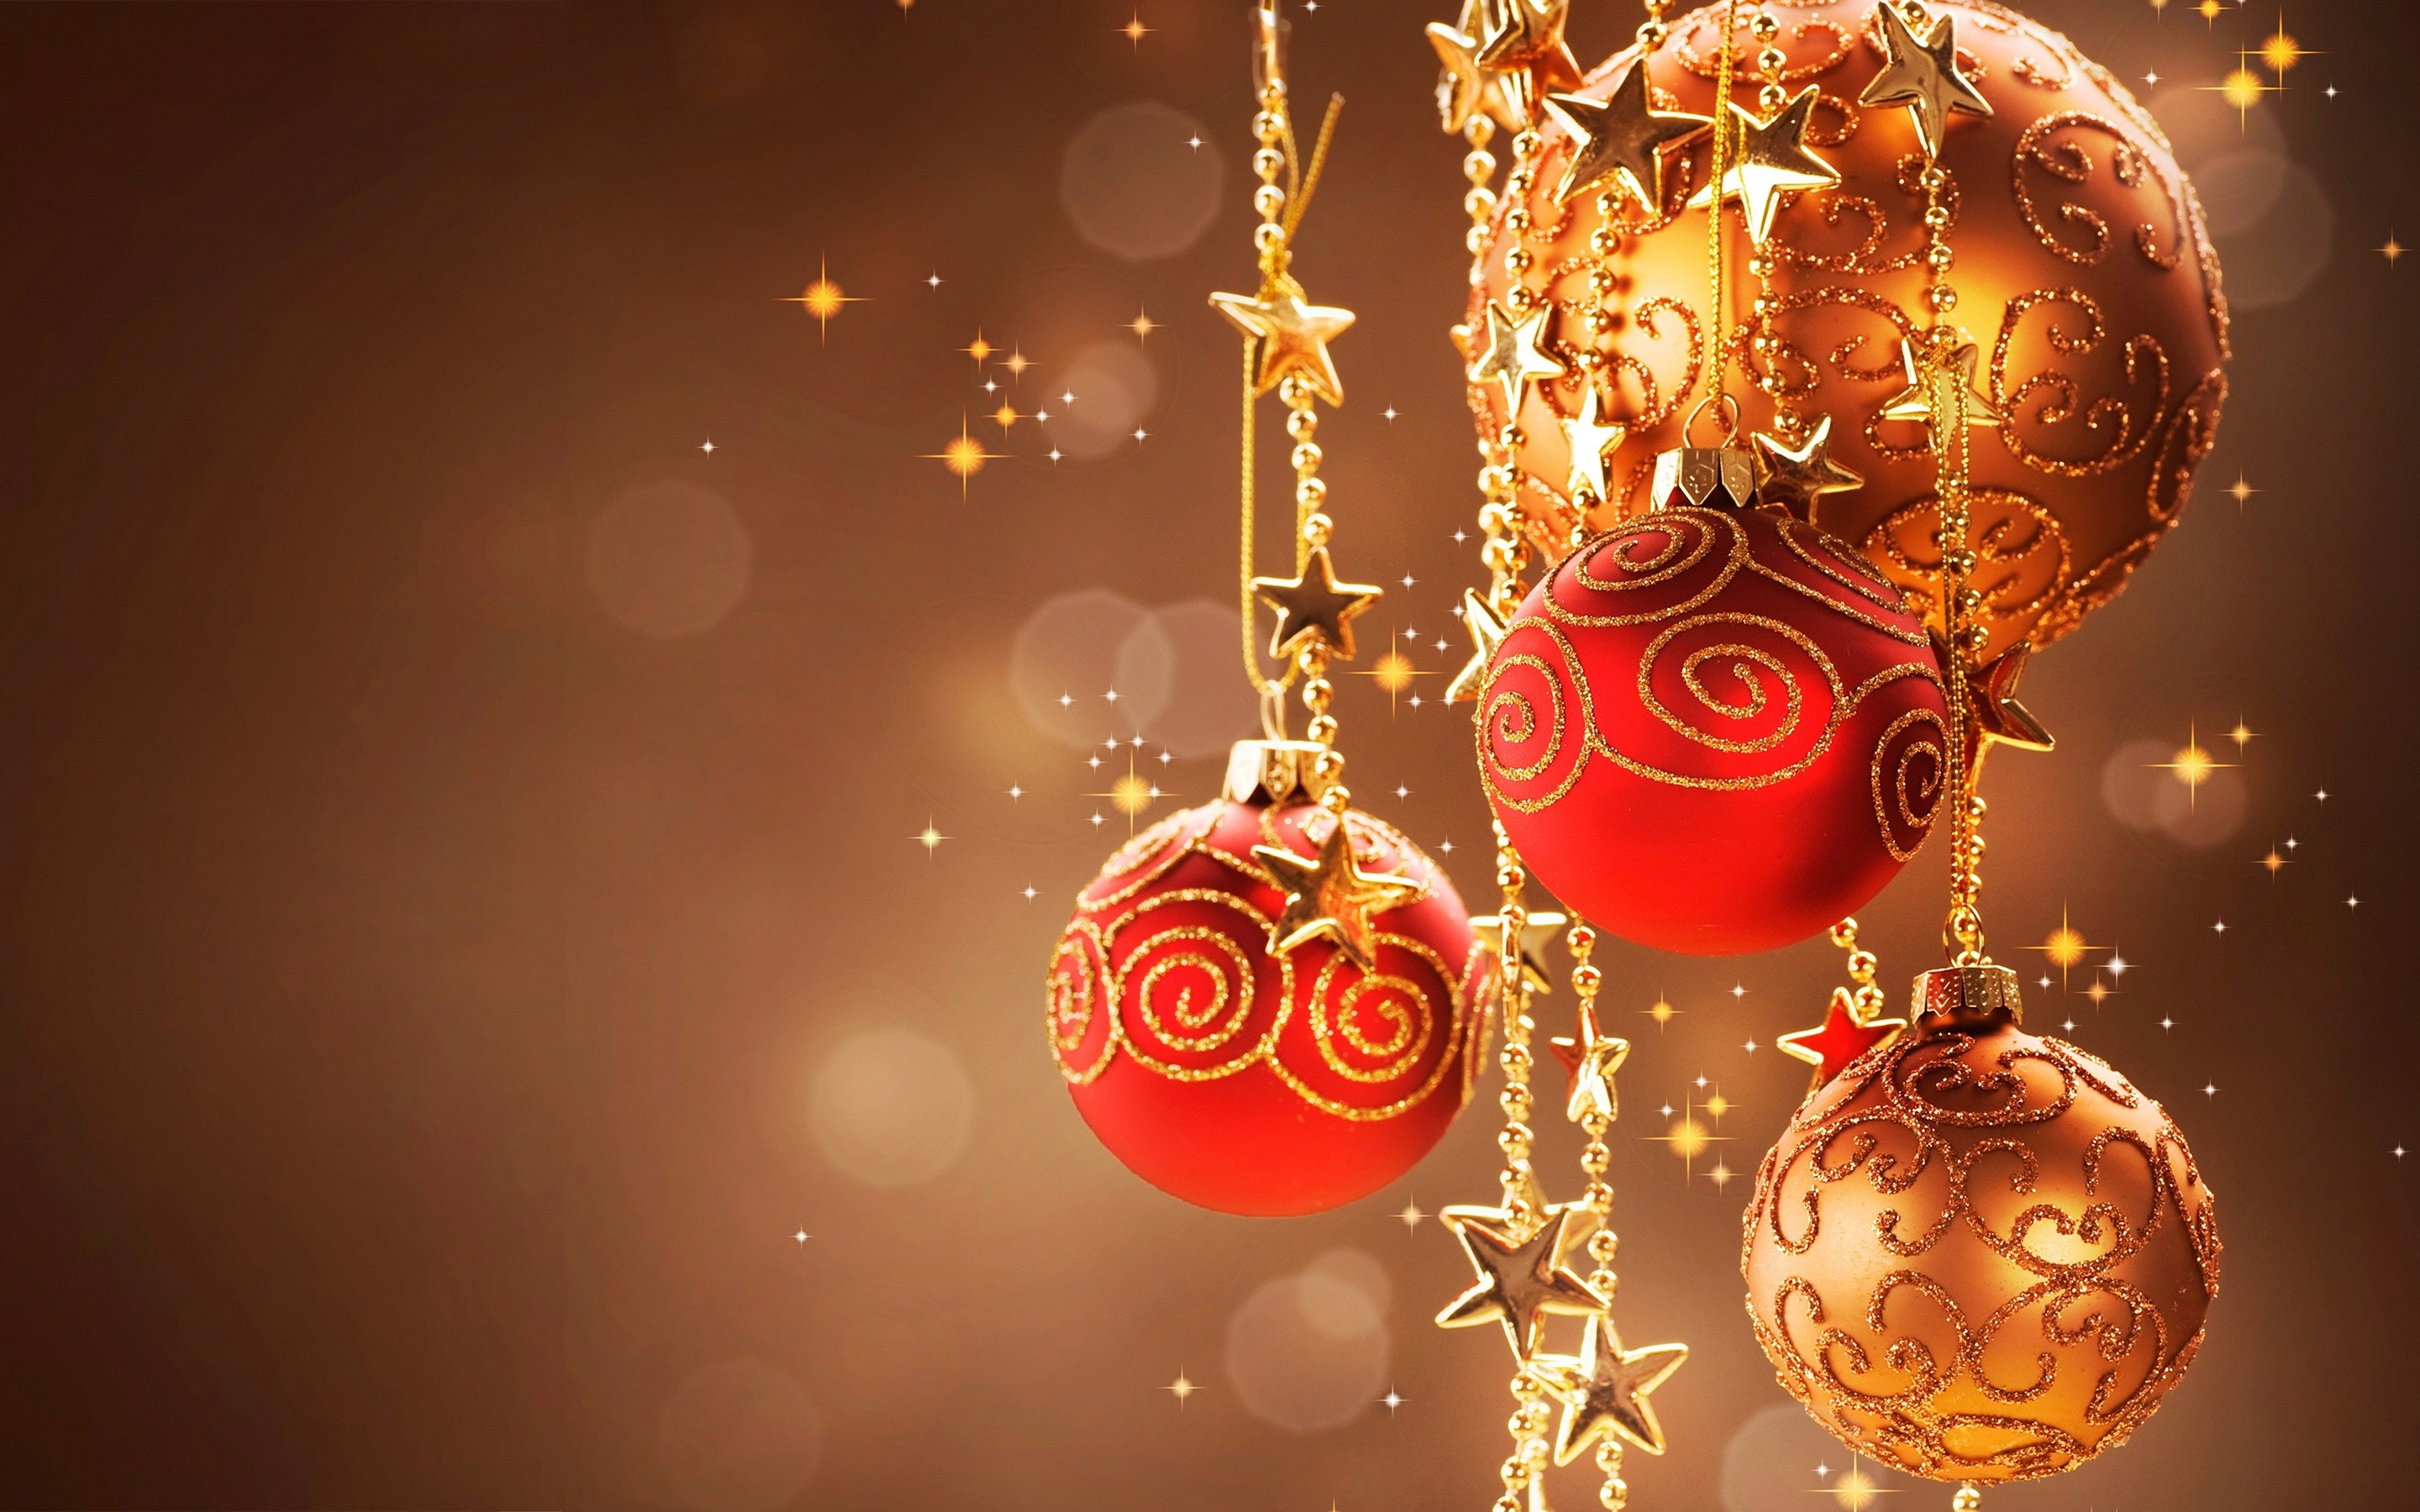 2880x1800 Fantastic Christmas Wallpaper 40201